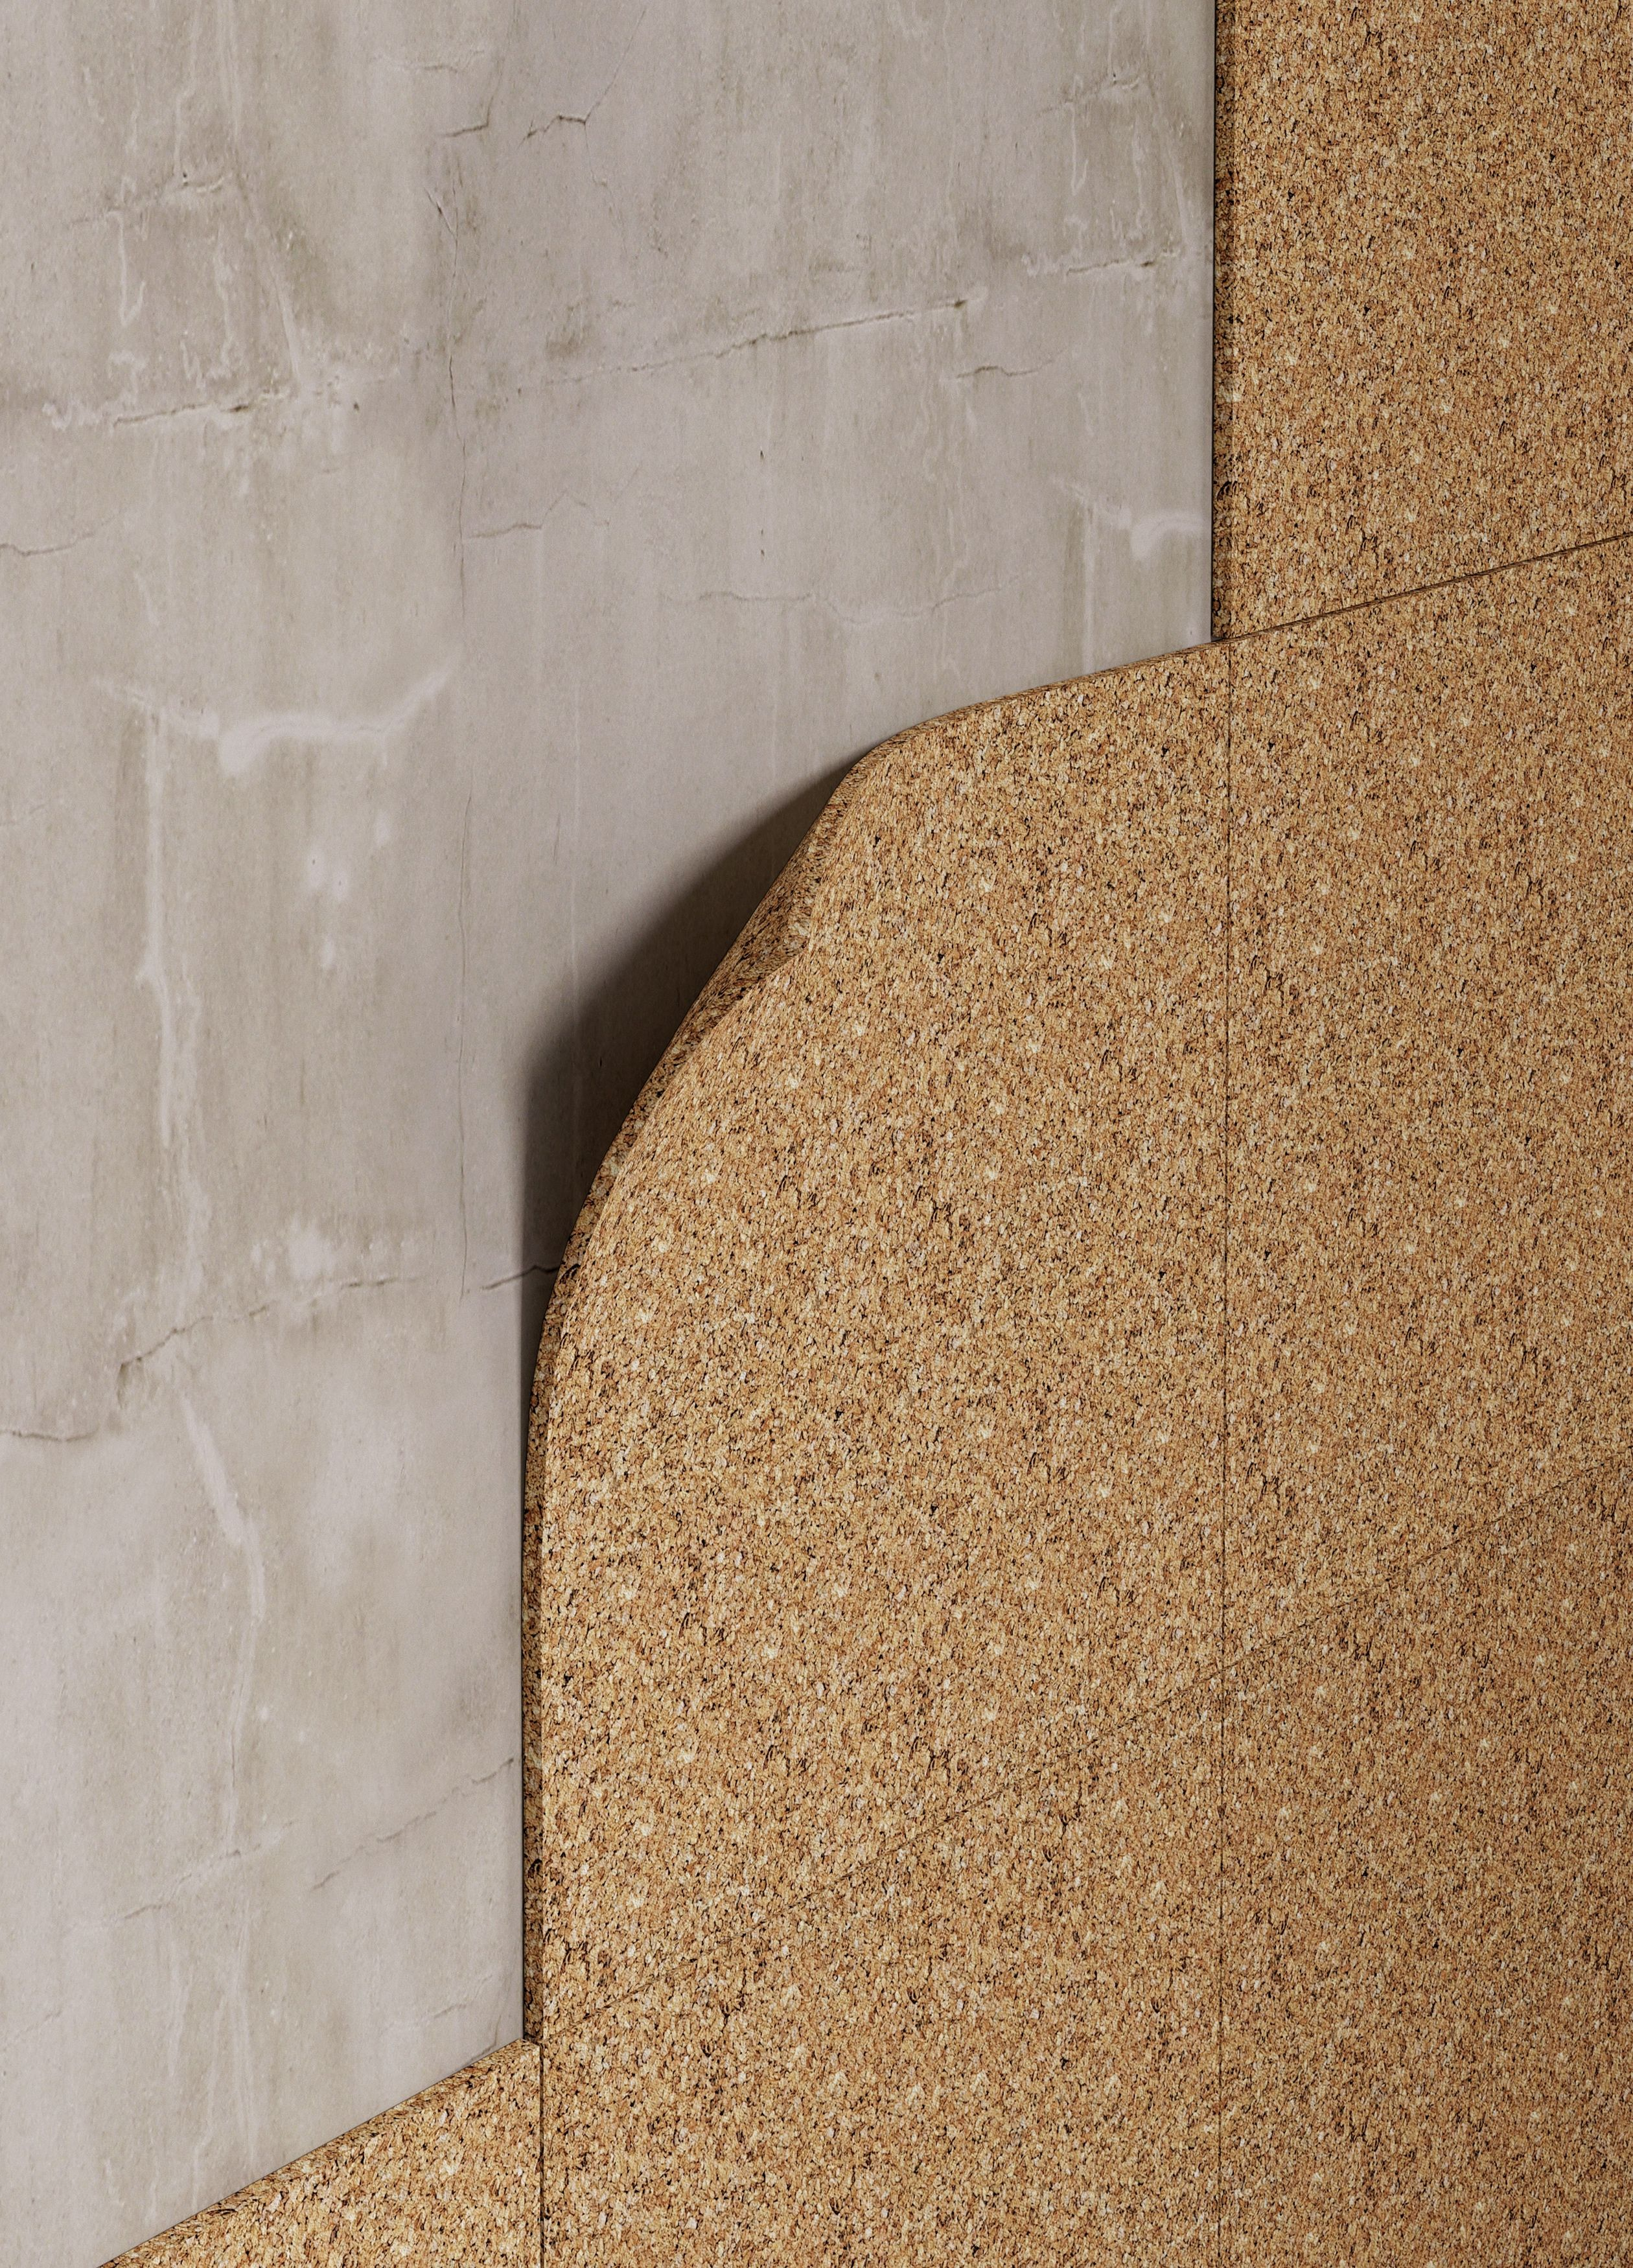 Expanded Cork Composite And Cork Boards Insulation Materials Cork Board Wall Building Materials